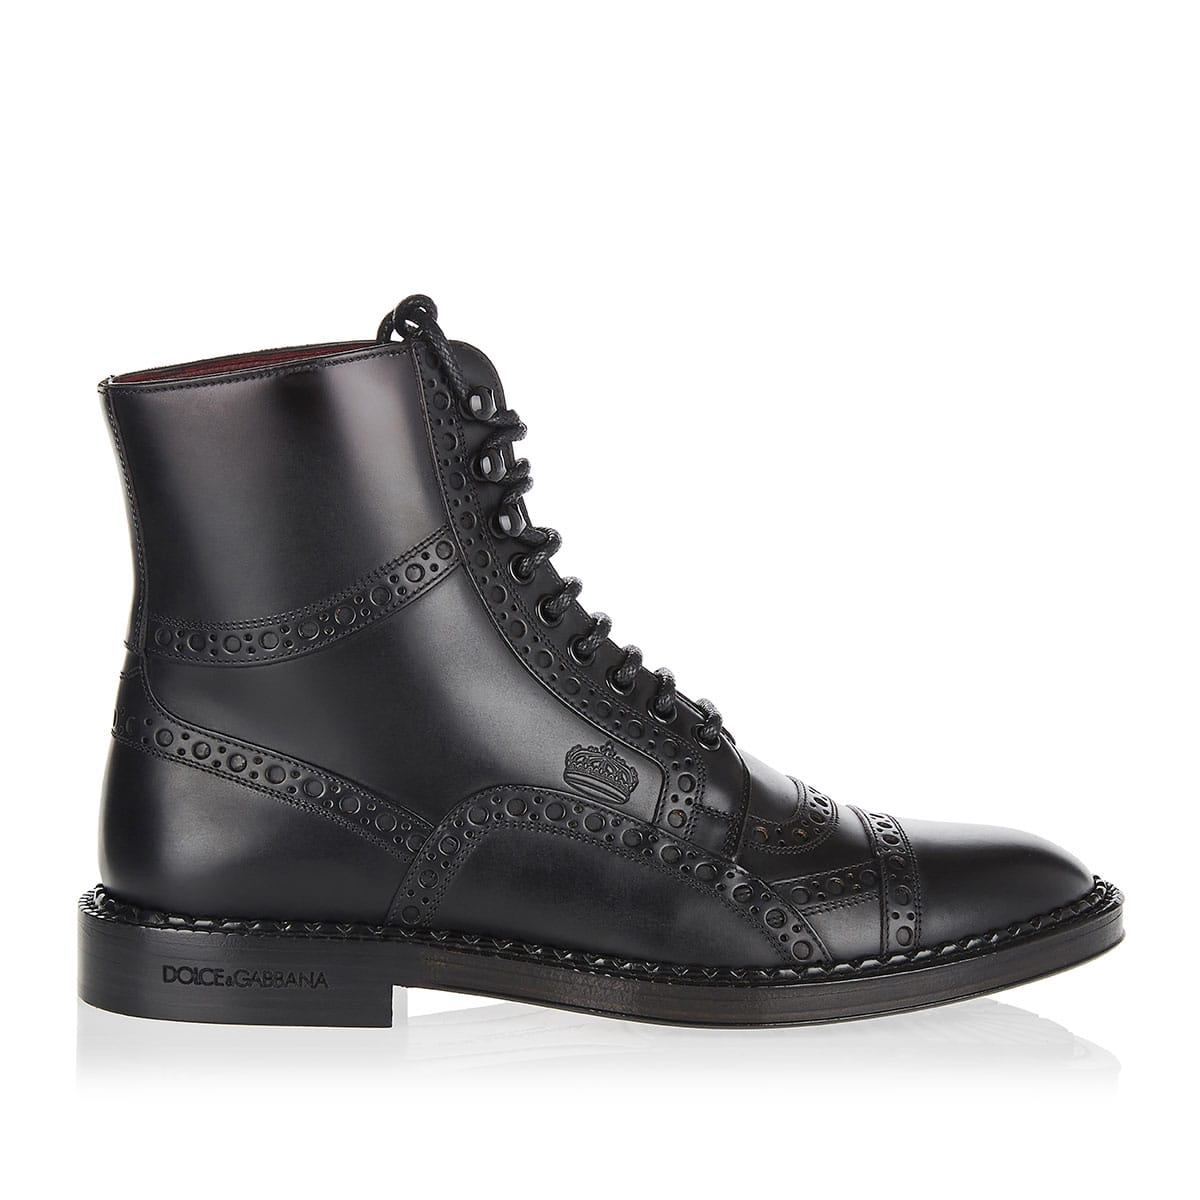 Leather brogue boots